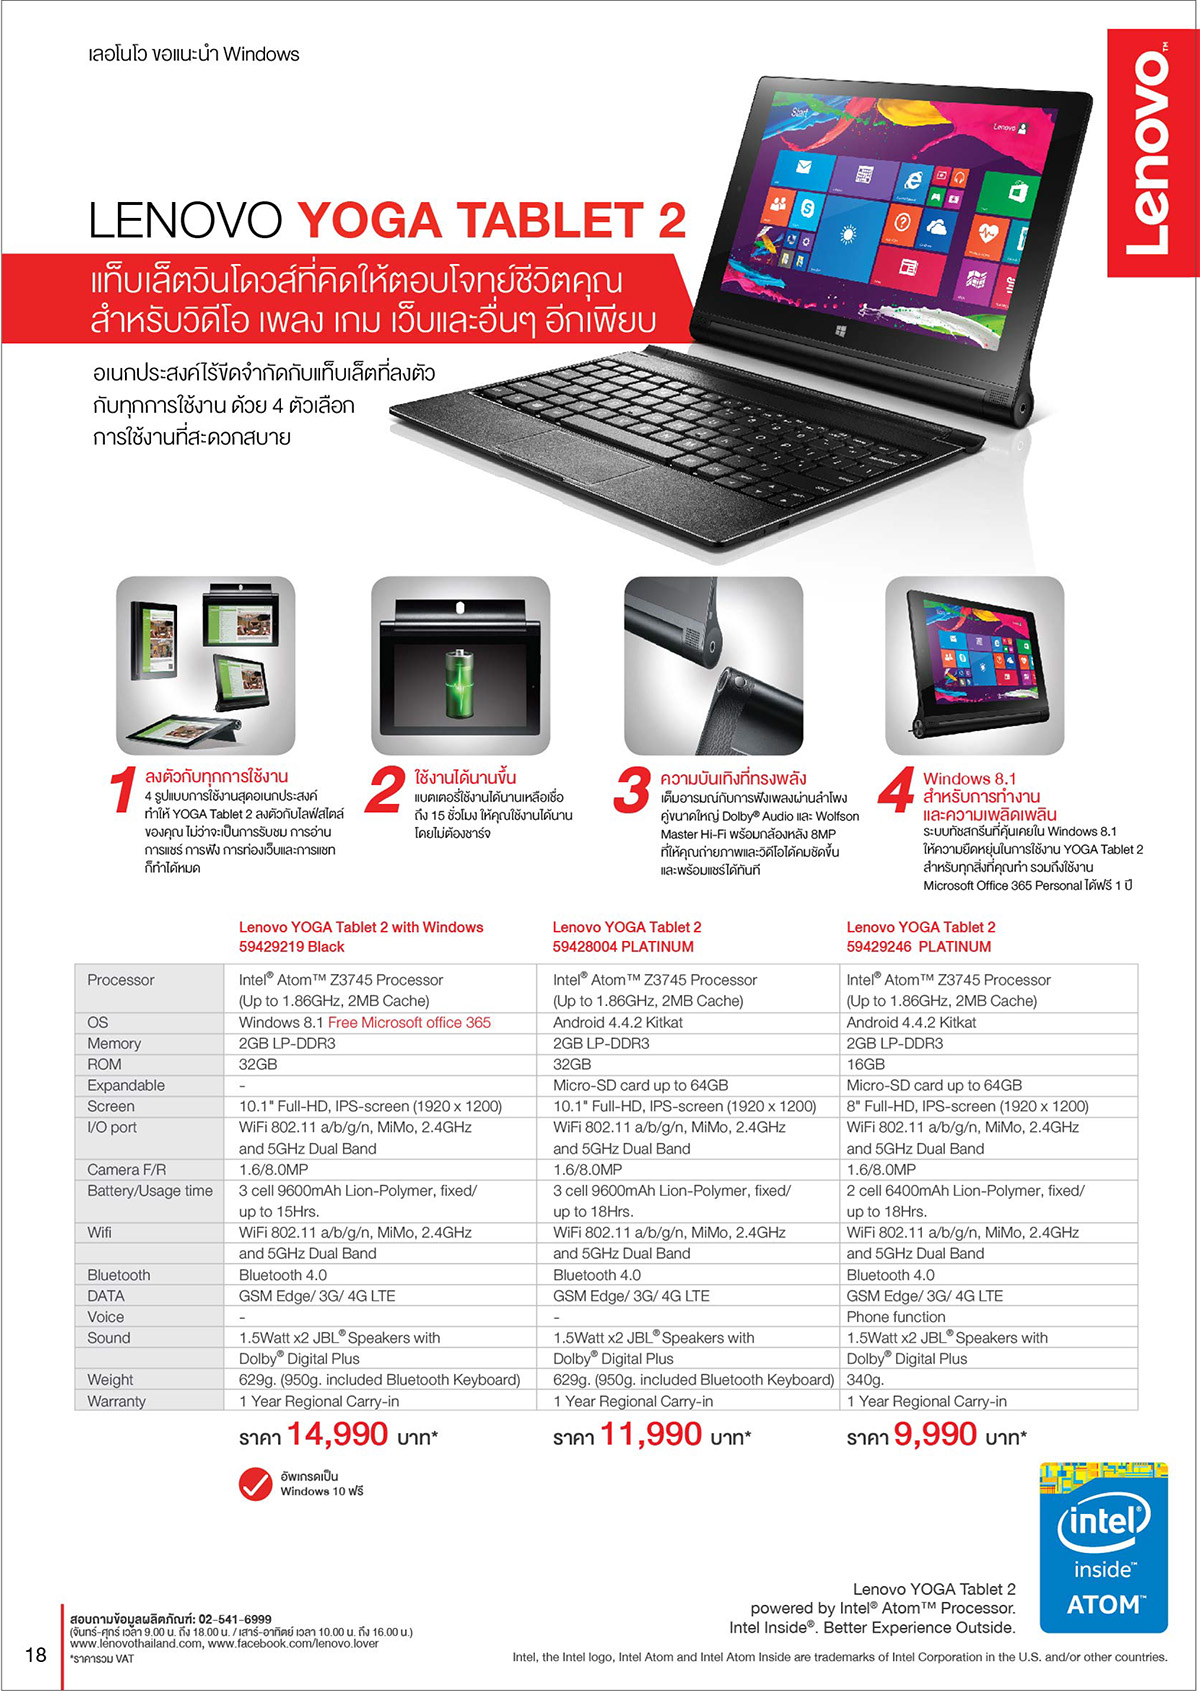 Lenovo Consumer Product Catalog Q2FY15_Final AW-18